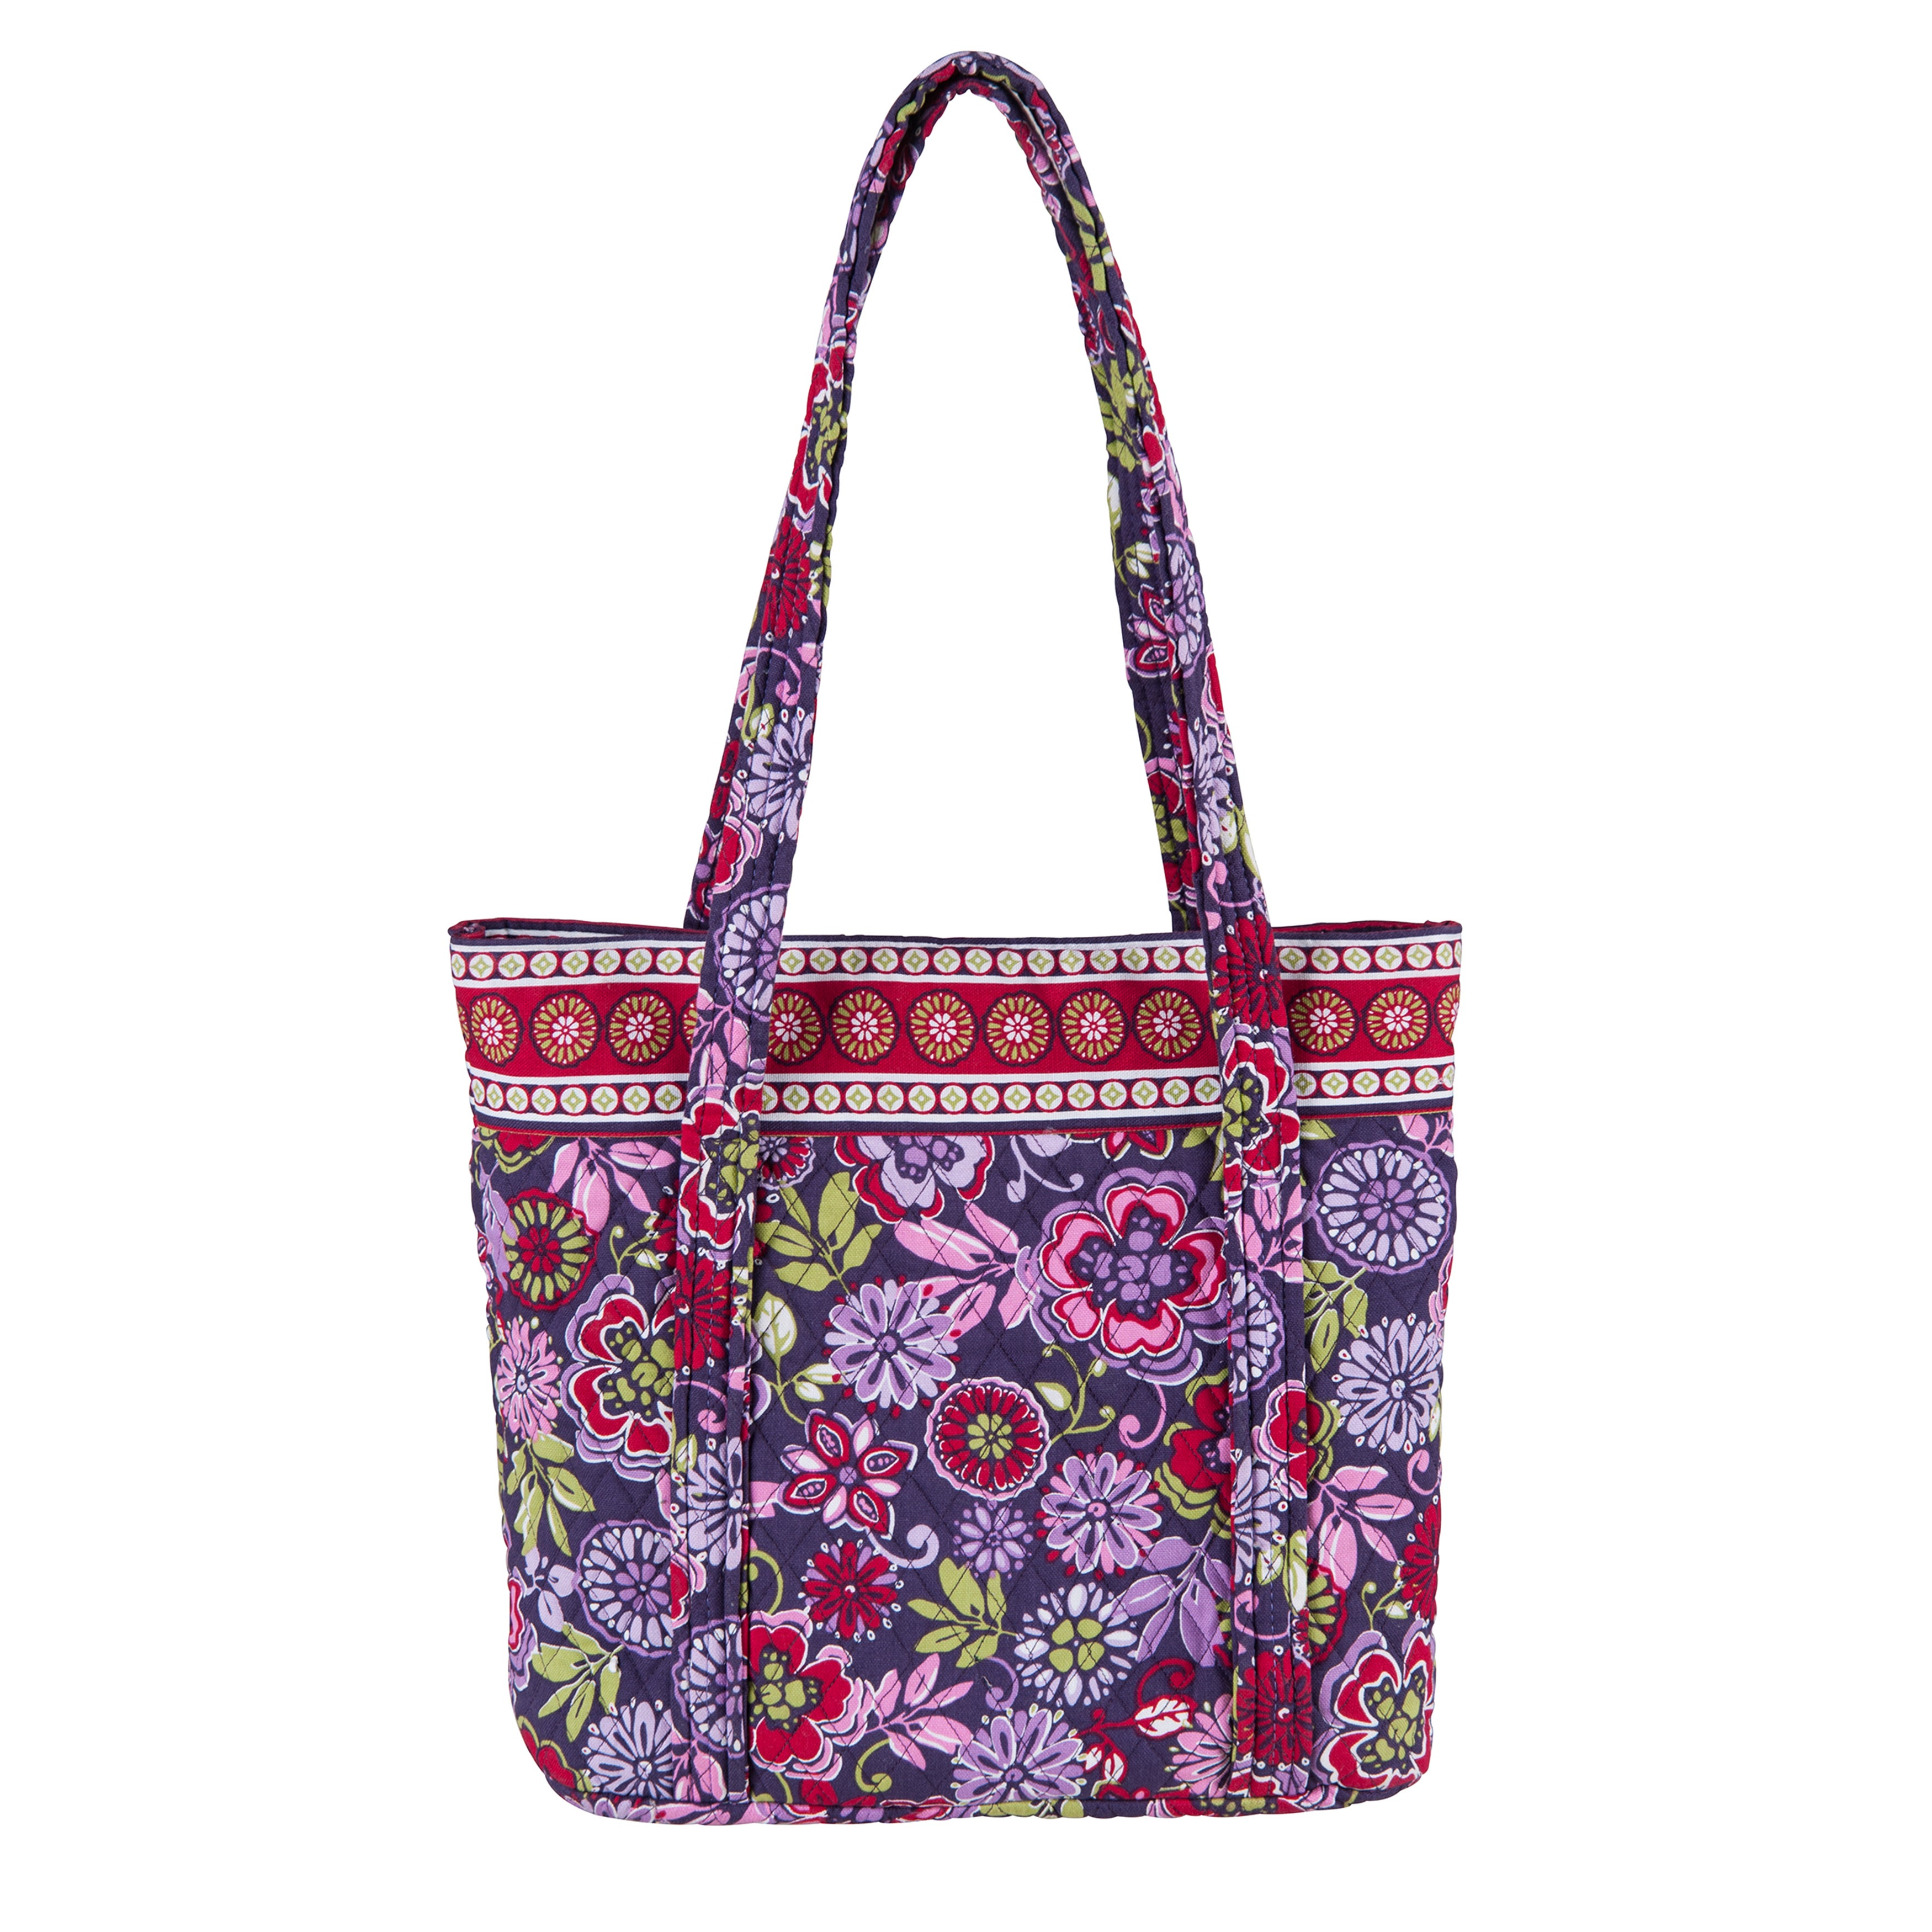 c0281e6dac7 Shop Zoe Large Multicolored Quilted Cotton Floral Tote Bag - On Sale ...